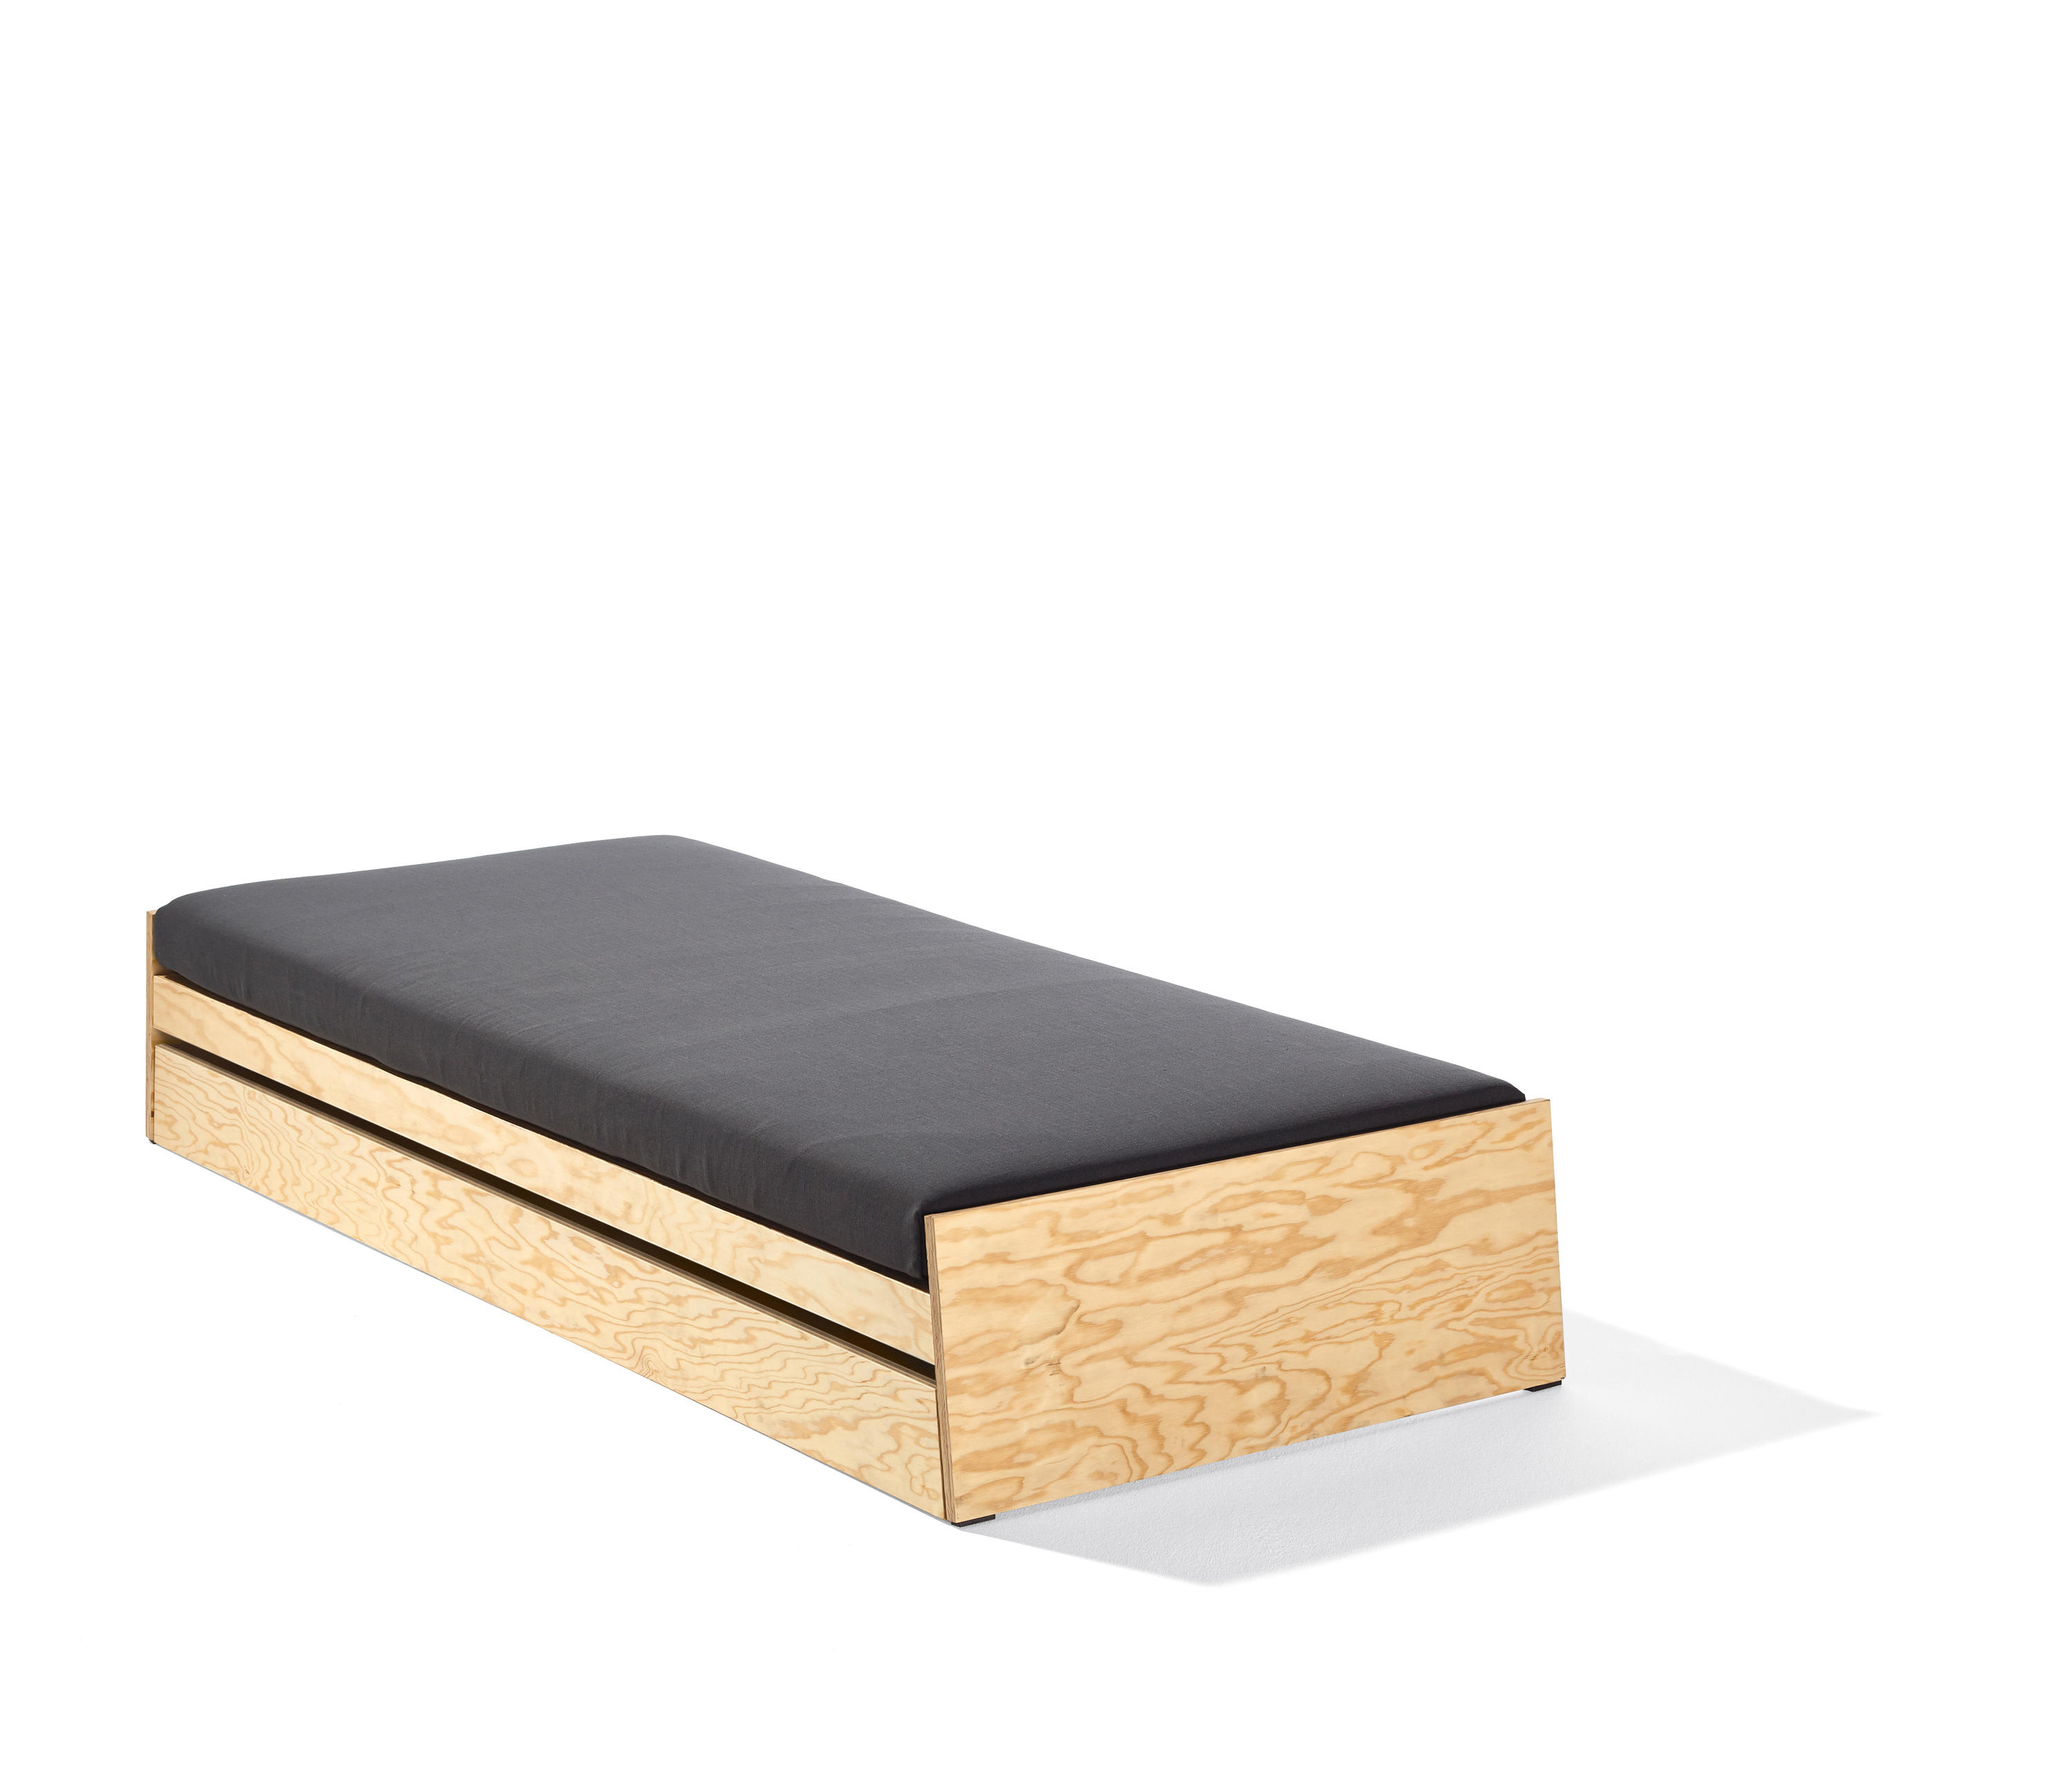 Childrens Beds With Pull Out Bed Underneath LÖnneberga Bed Kids Beds From Richard Lampert Architonic